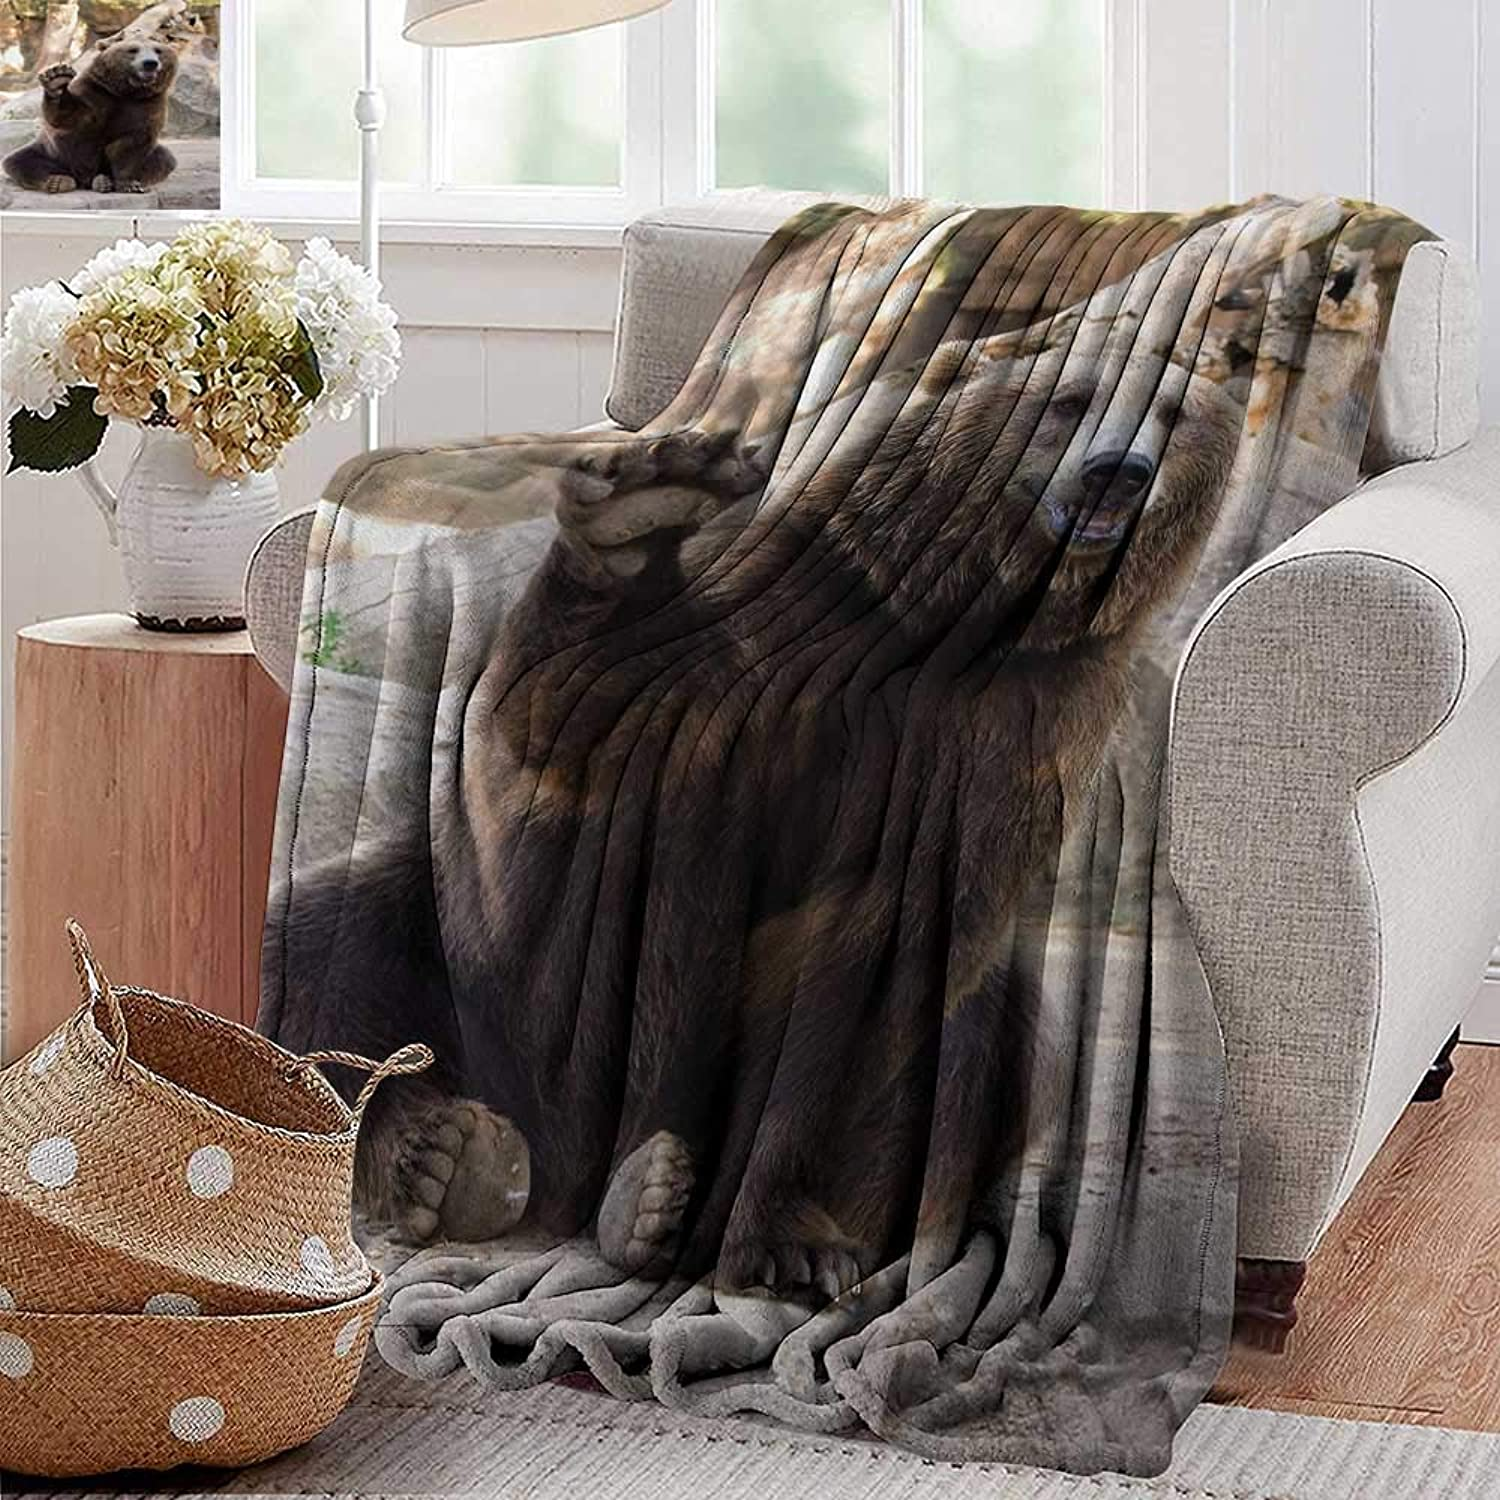 Camping Blanket,Bear,Friendly Animal Sitting and Waving a Paw in The Zoo Cute Funny Wild Mammal Gesture,Brown Beige,Flannel Blankets Made with Plush Microfiber 50 x60